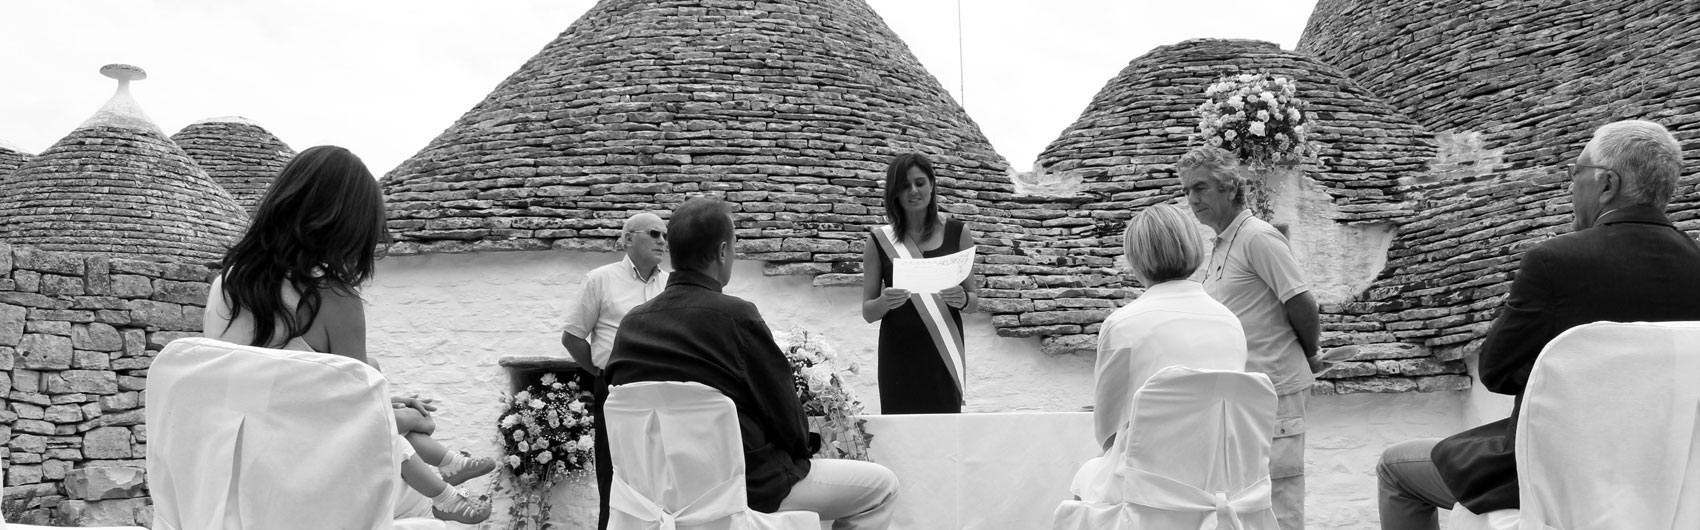 alberobello-civil-wedding